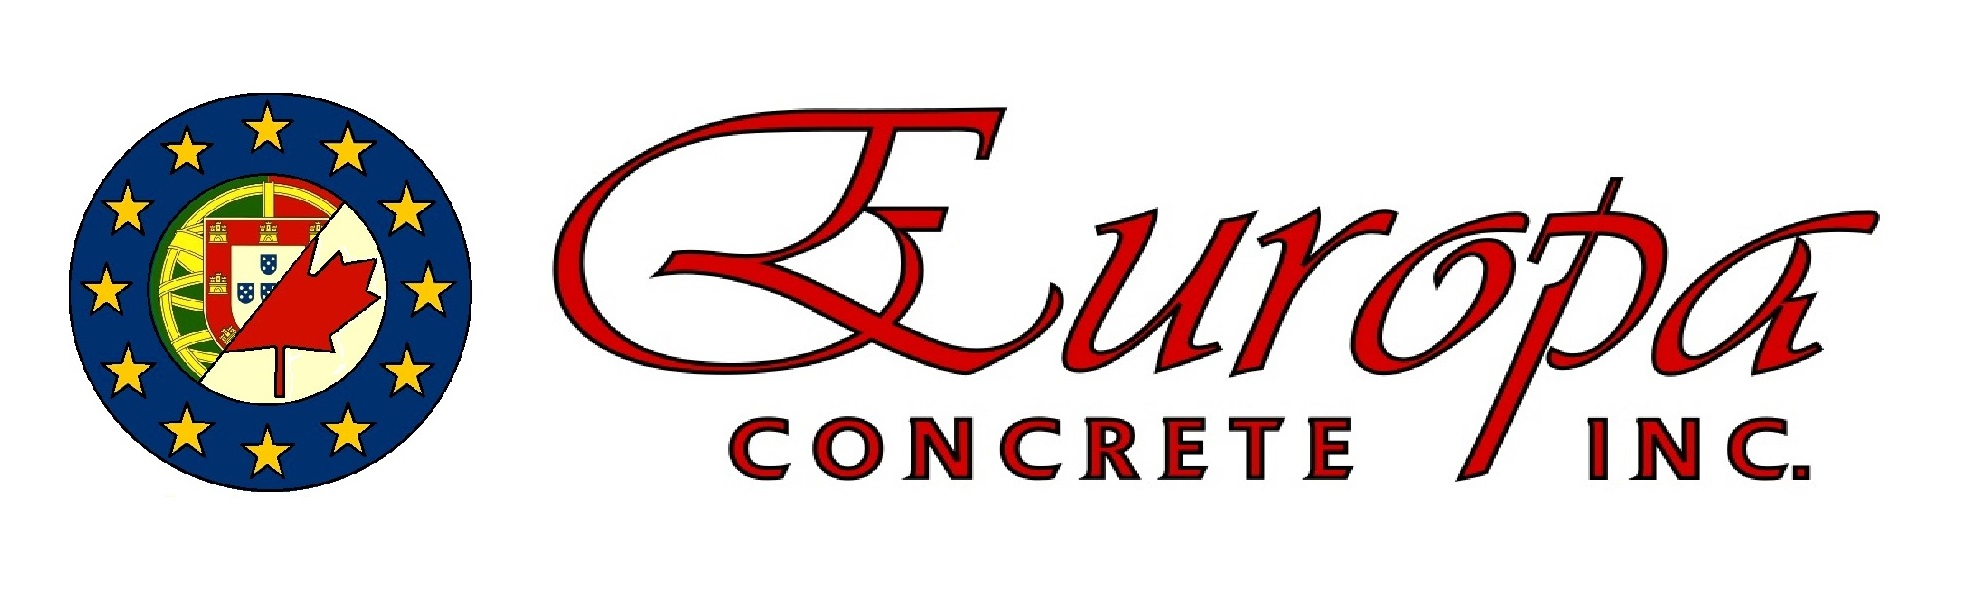 Europa Concrete & Interlocking Inc